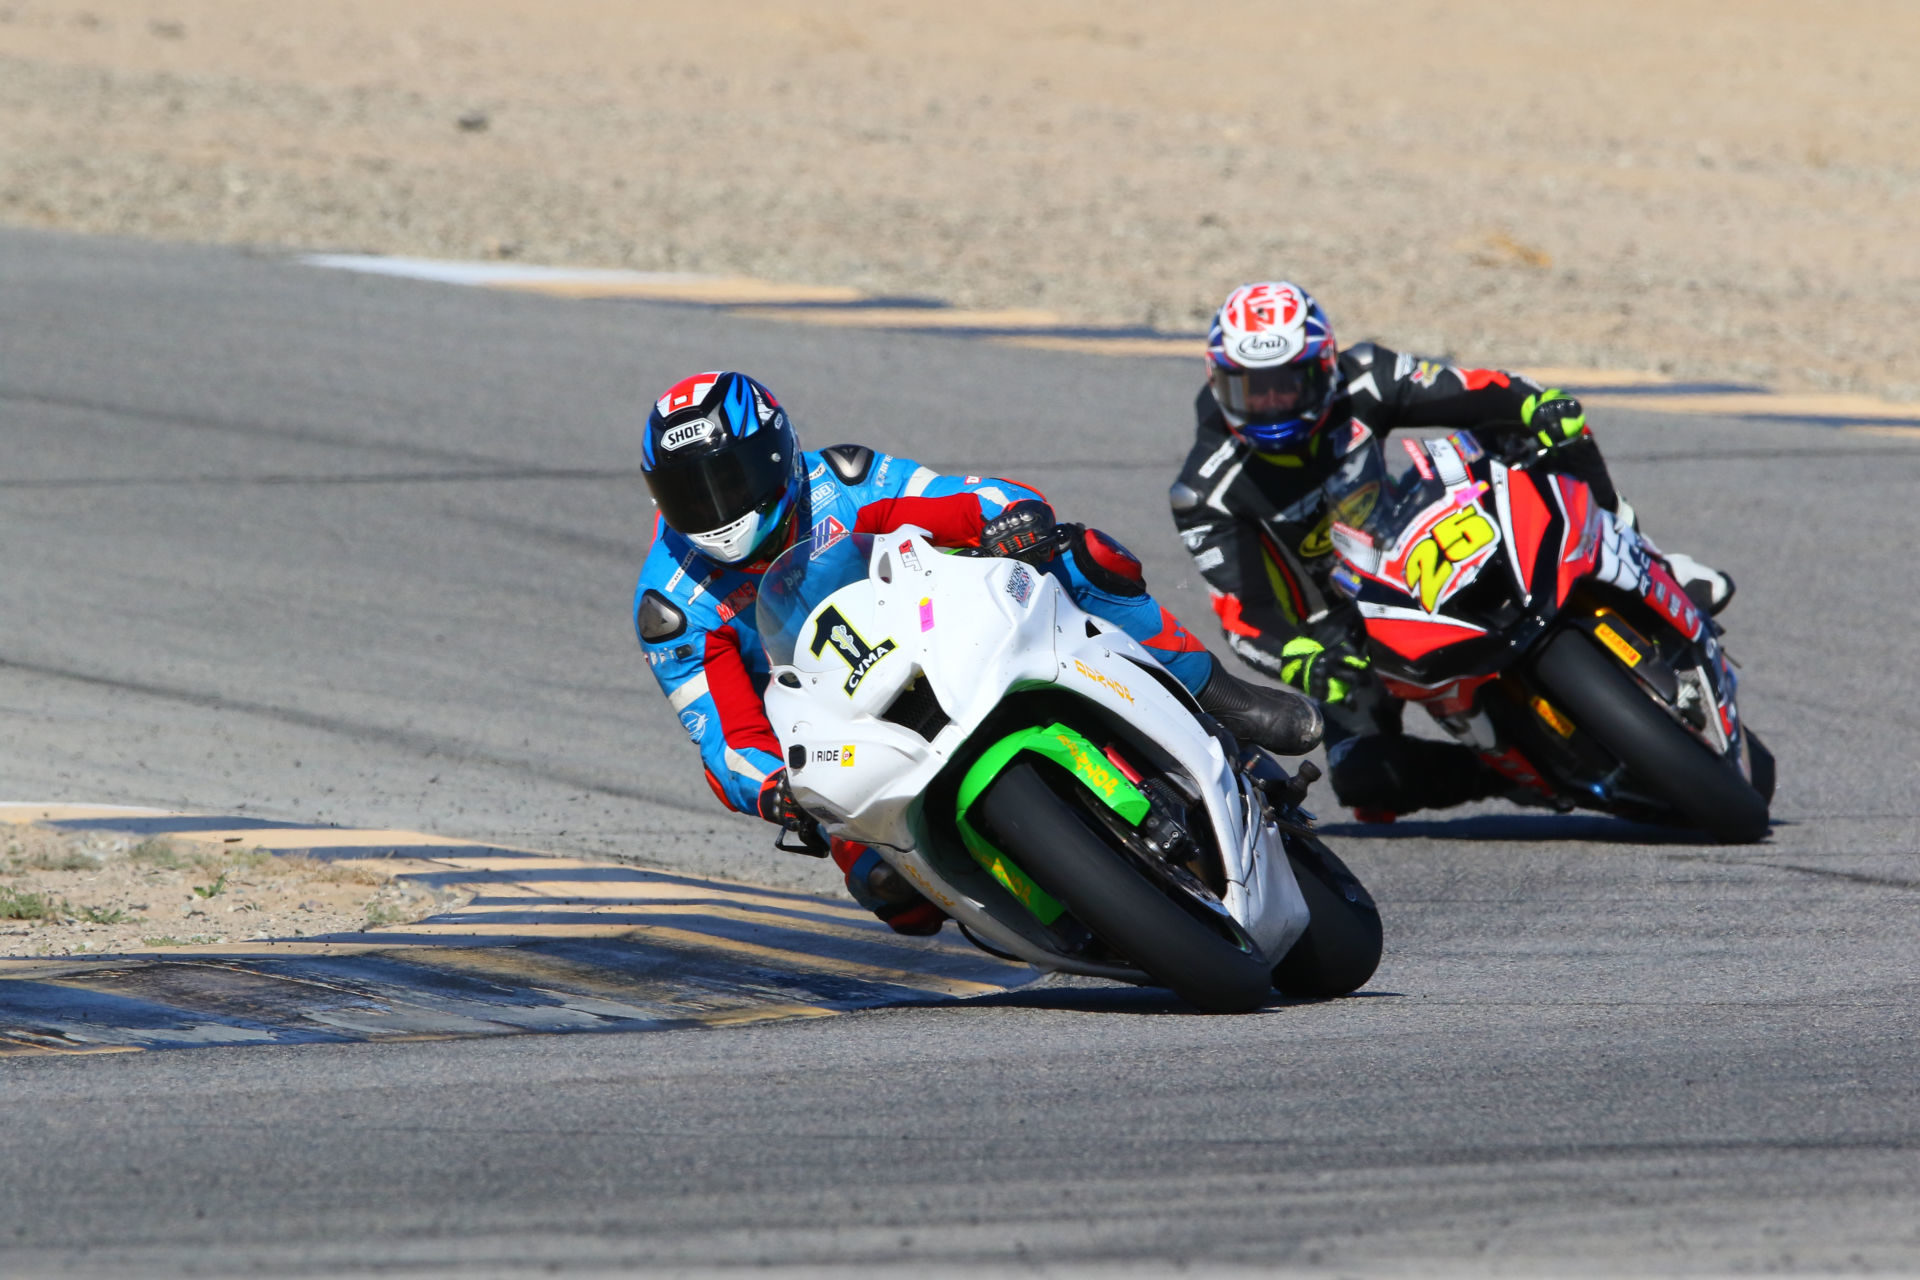 Michael Gilbert (1) leading David Anthony (25) in the CVMA Shootout race. Photo by CaliPhotography.com, courtesy of CVMA.